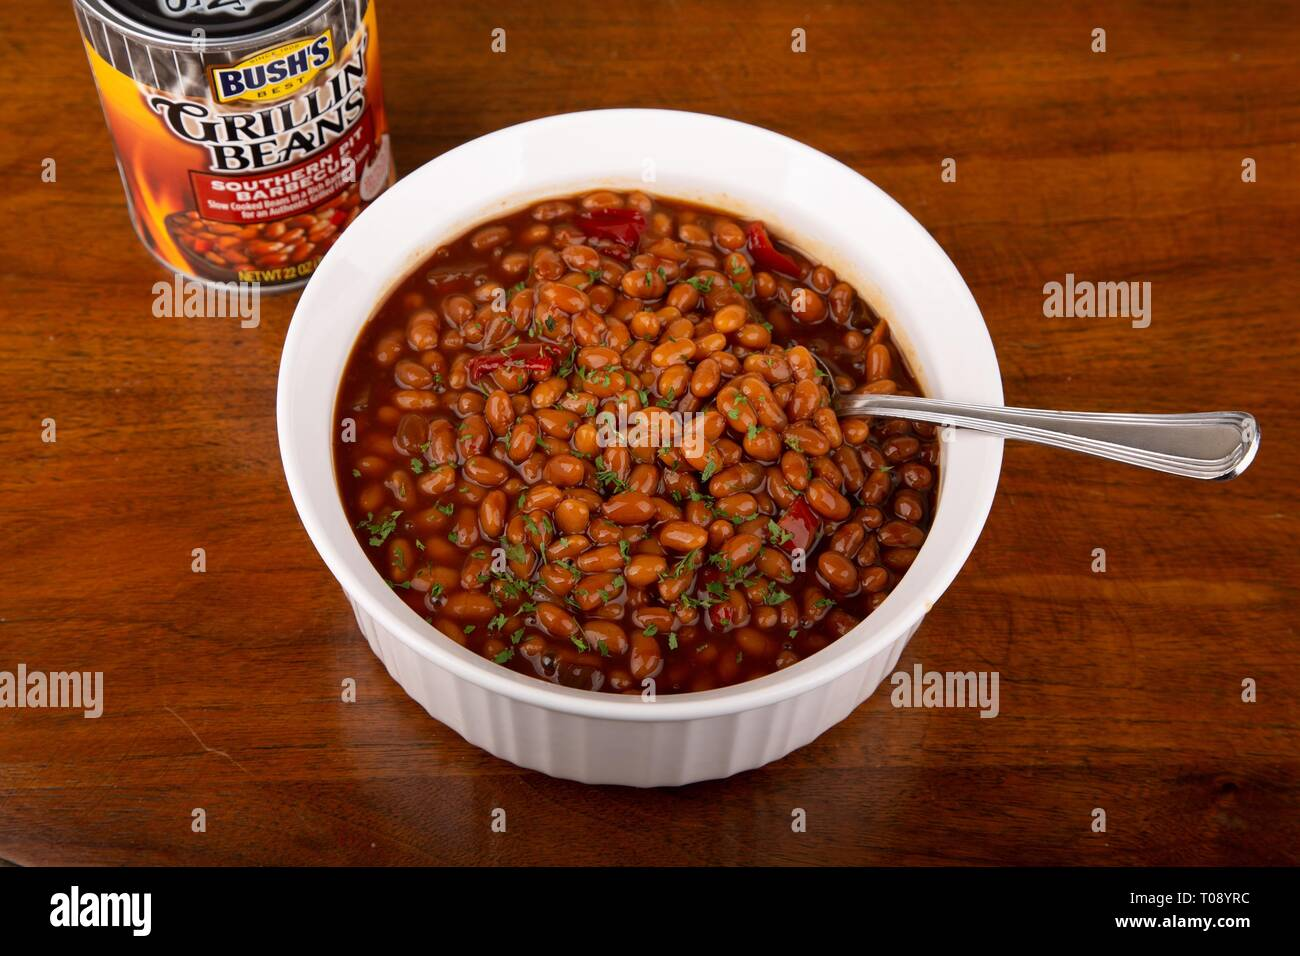 ATLANTA, GEORGIA - April 21, 2017: Bush's Grillin Beans in a can and white mug on a wood table. - Stock Image